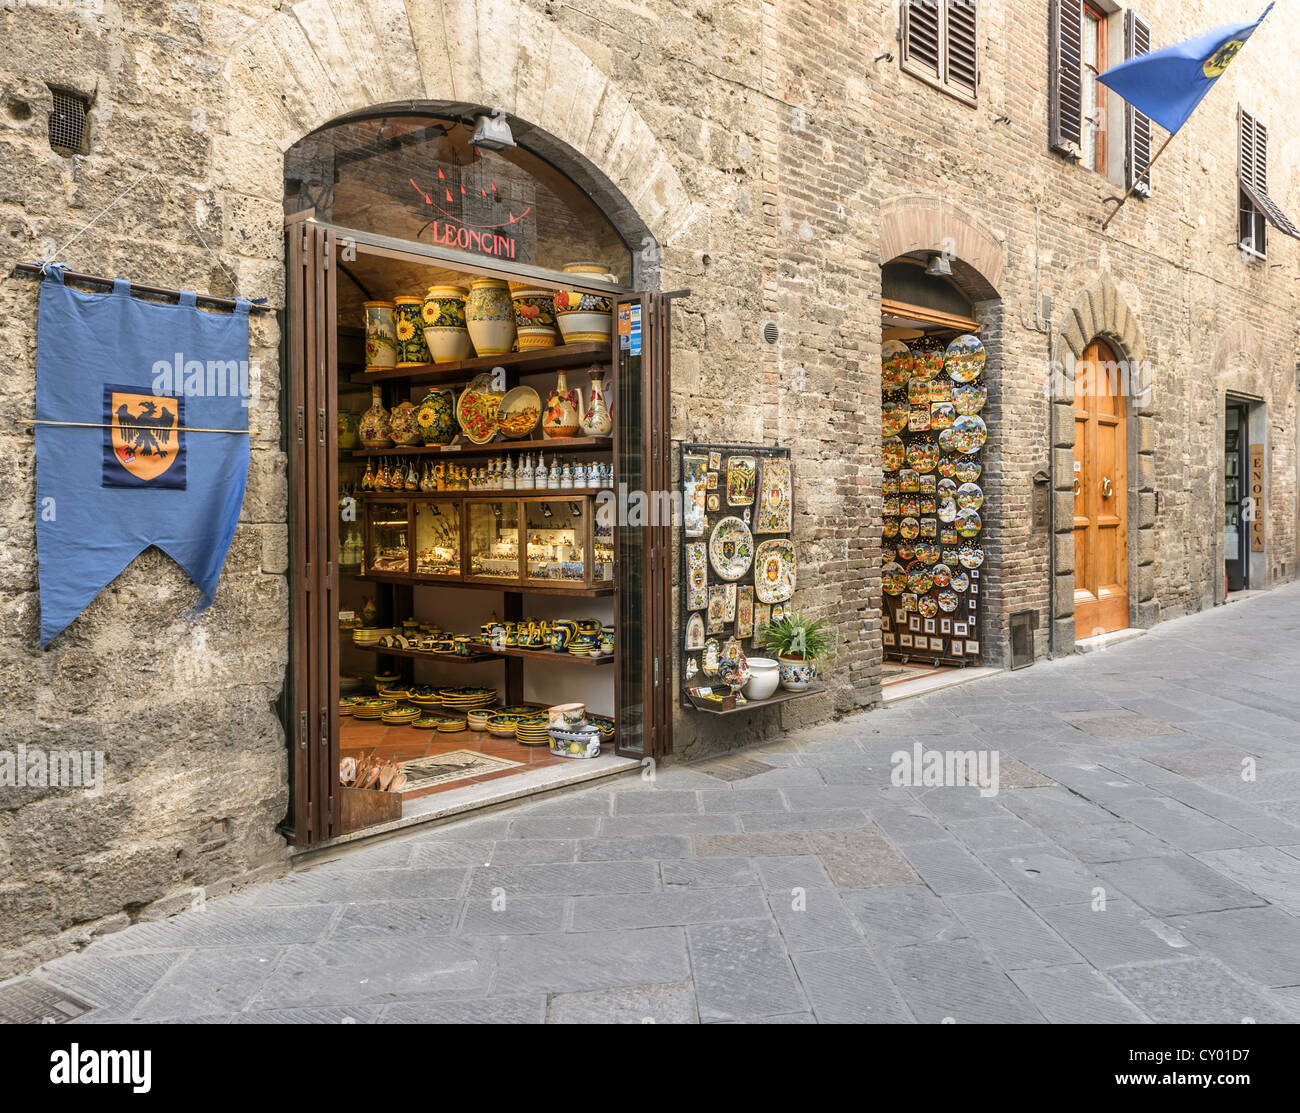 Porcelain shop in the historic district, San Gimignano, Tuscany, Italy, Europe - Stock Image